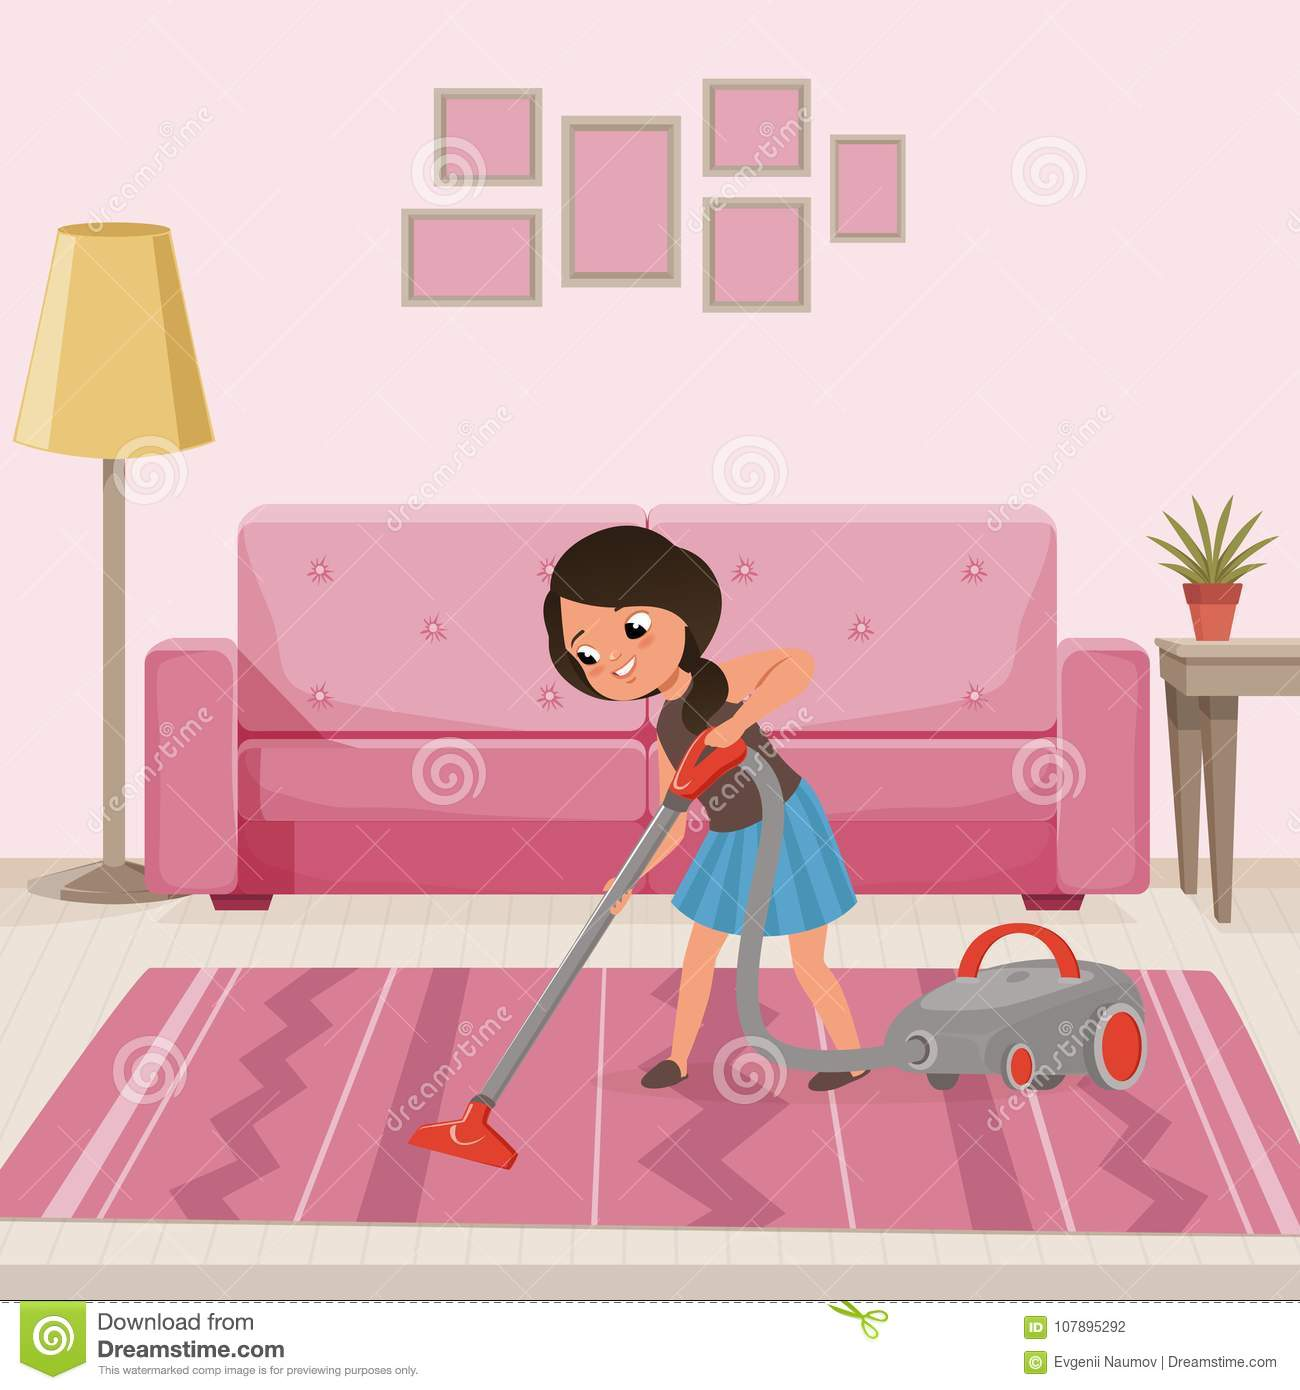 Download Cheerful Teen Girl Cleaning Carpet With Vacuum Cleaner At Living Room Child Helping